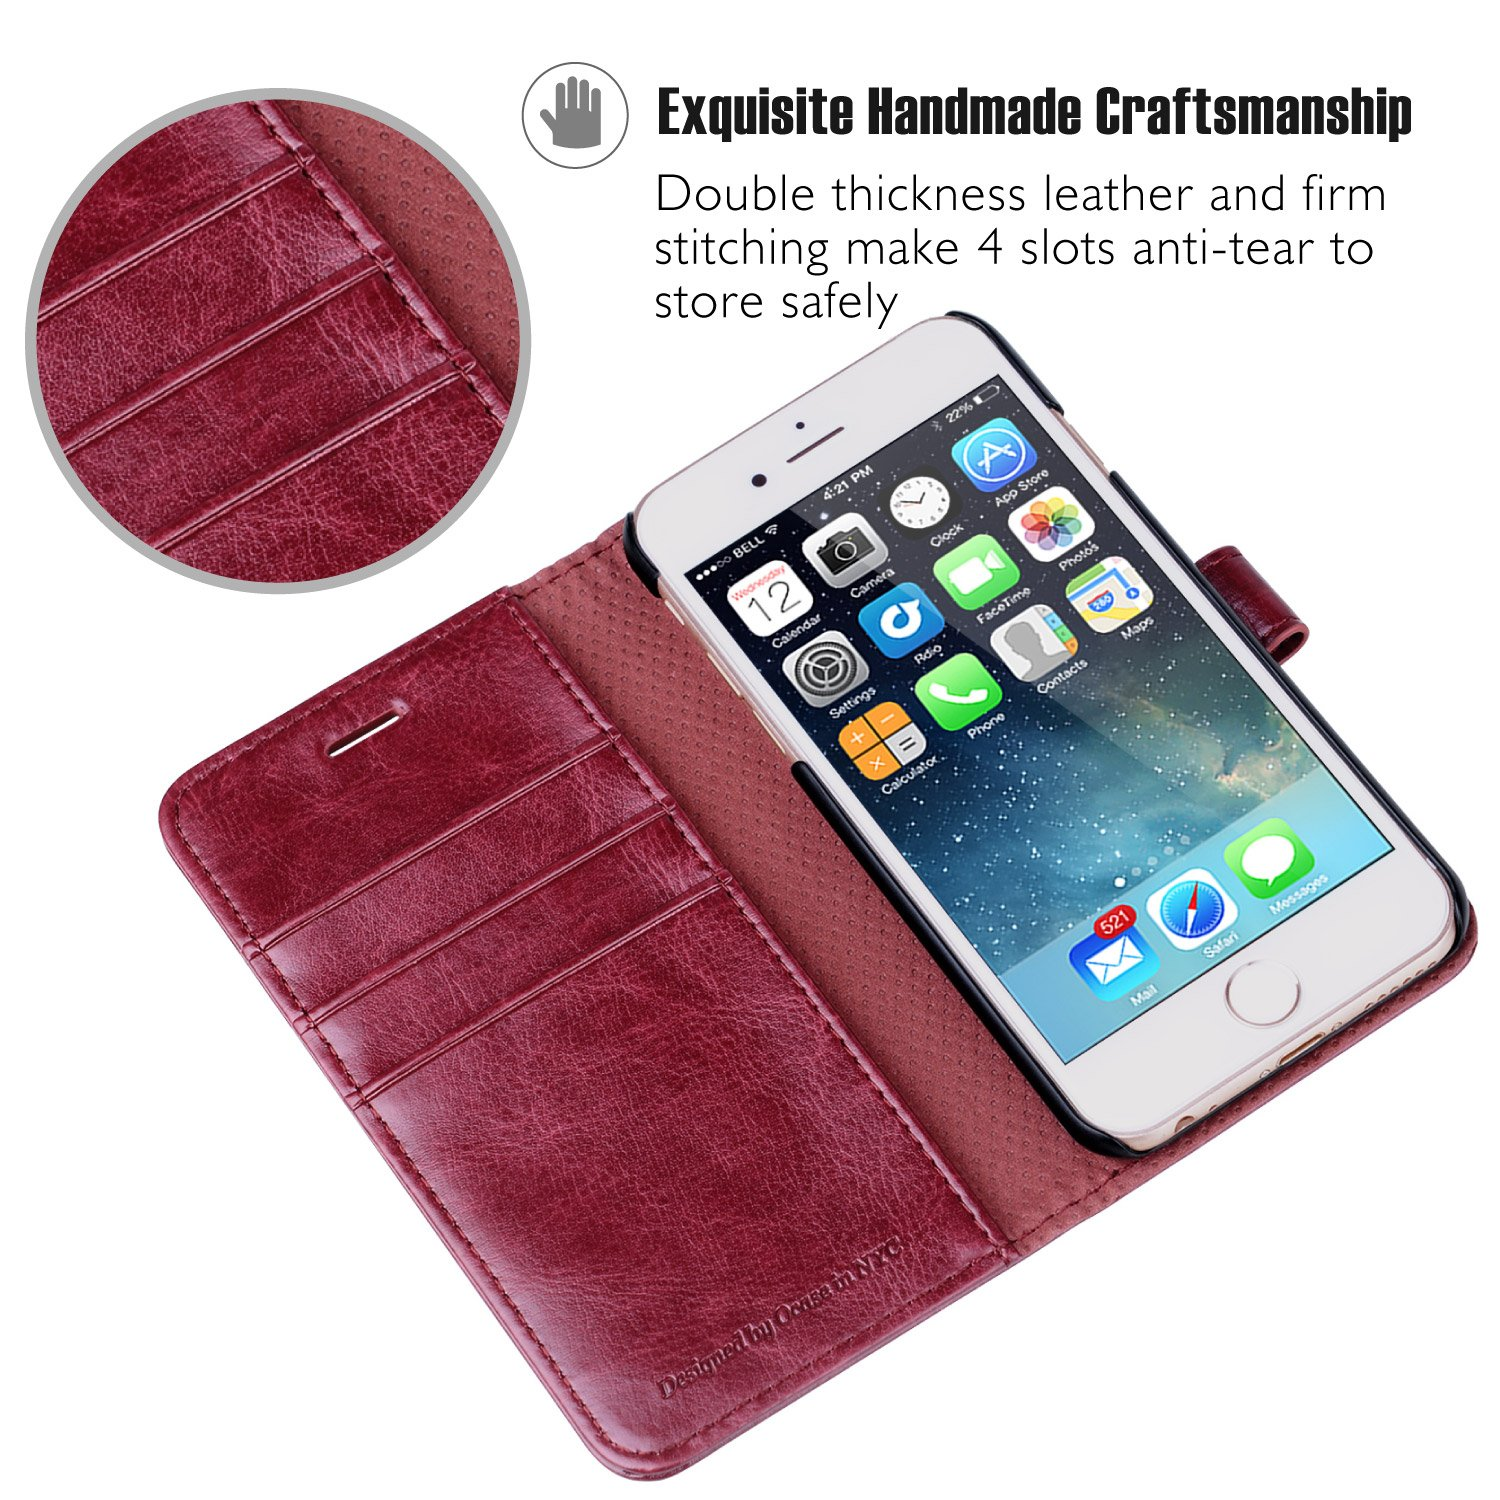 Wallet Leather Case For Apple iPhone 6//6S Devices Gray Screen Protector Included OCASE iPhone 6 Case iPhone 6S Case